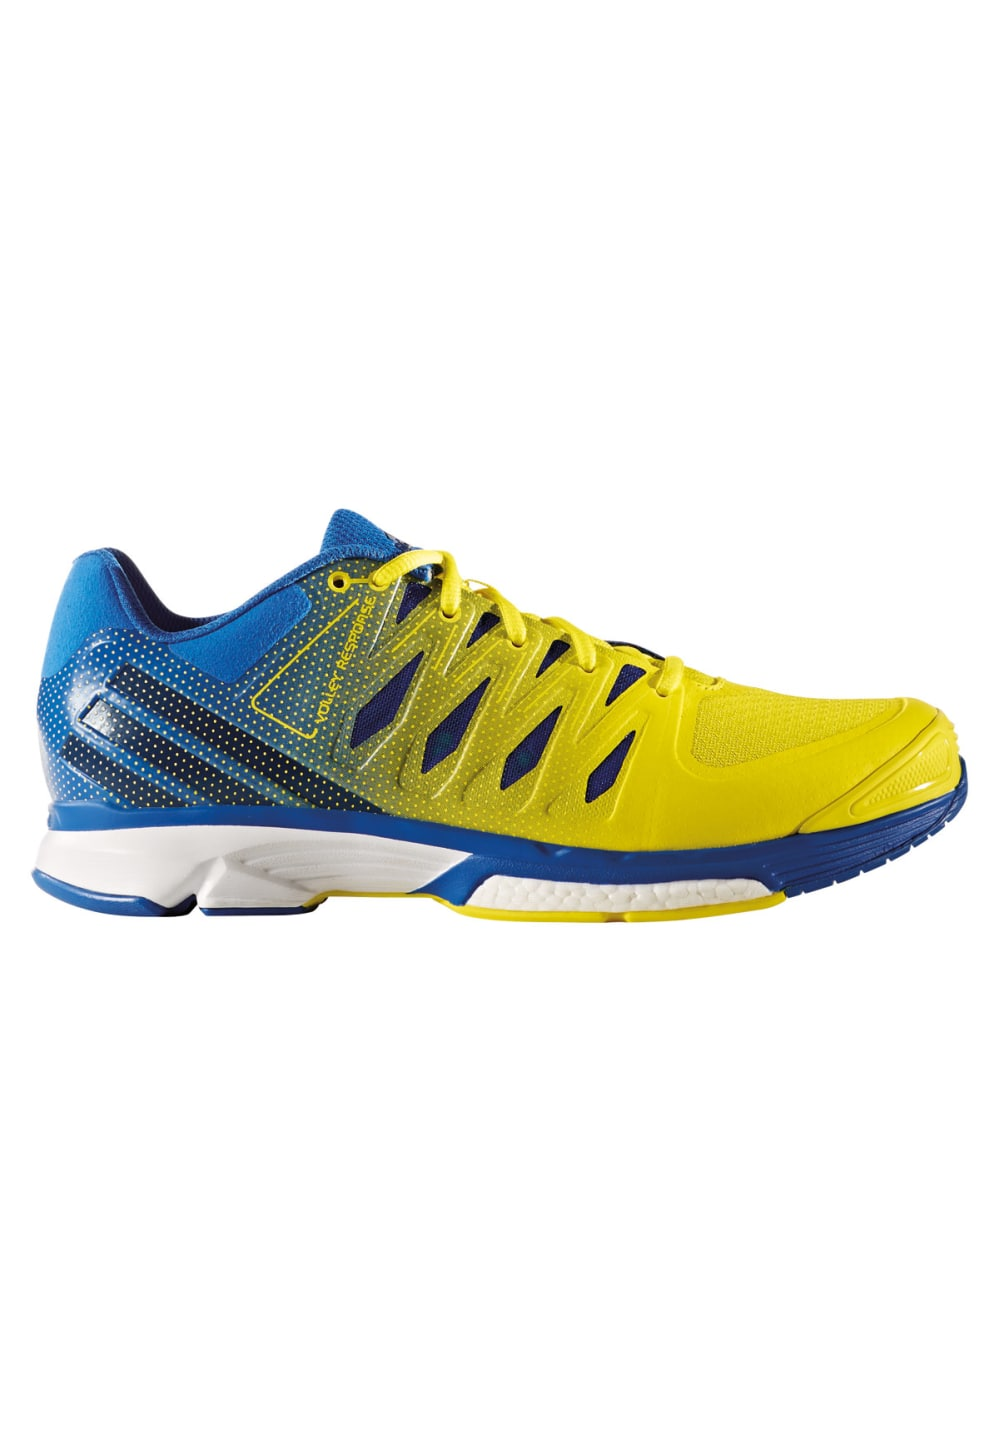 adidas Volley Response 2 Boost - Volleyball shoes for Men - Yellow ... 9b9ecb2e72537